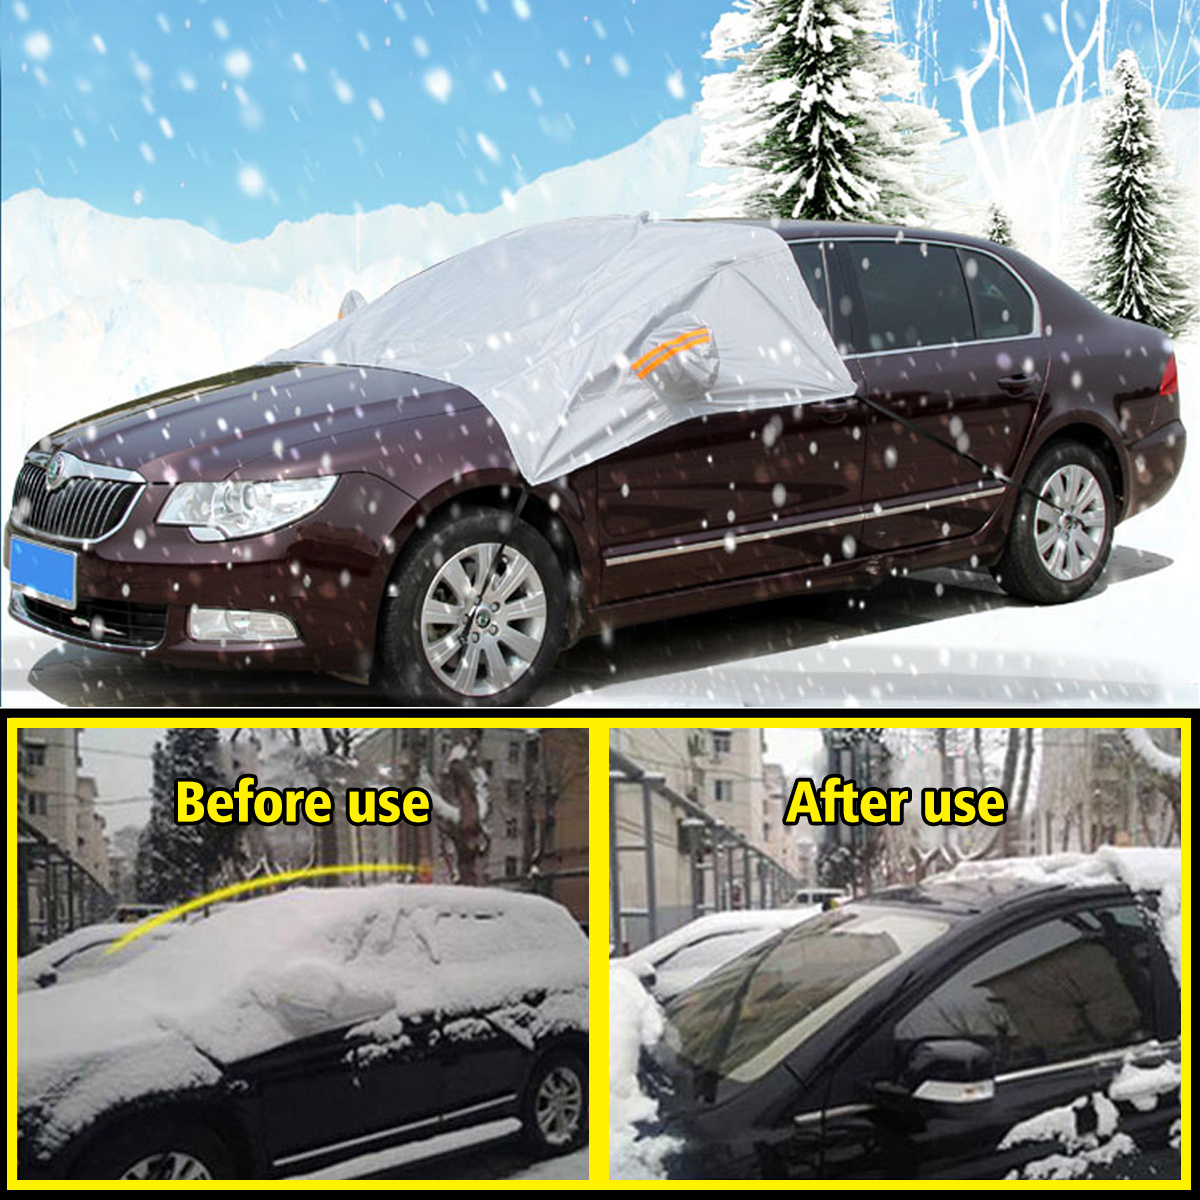 AUDEW Windshield Snow Cover Car Snow Cover for Automobiles Frost Ice Guard Design Protects Windshield Wiper and Mirror with hooks Fixed Four Wheels & Reflective Warning Bar Universal for Cars, SUVs